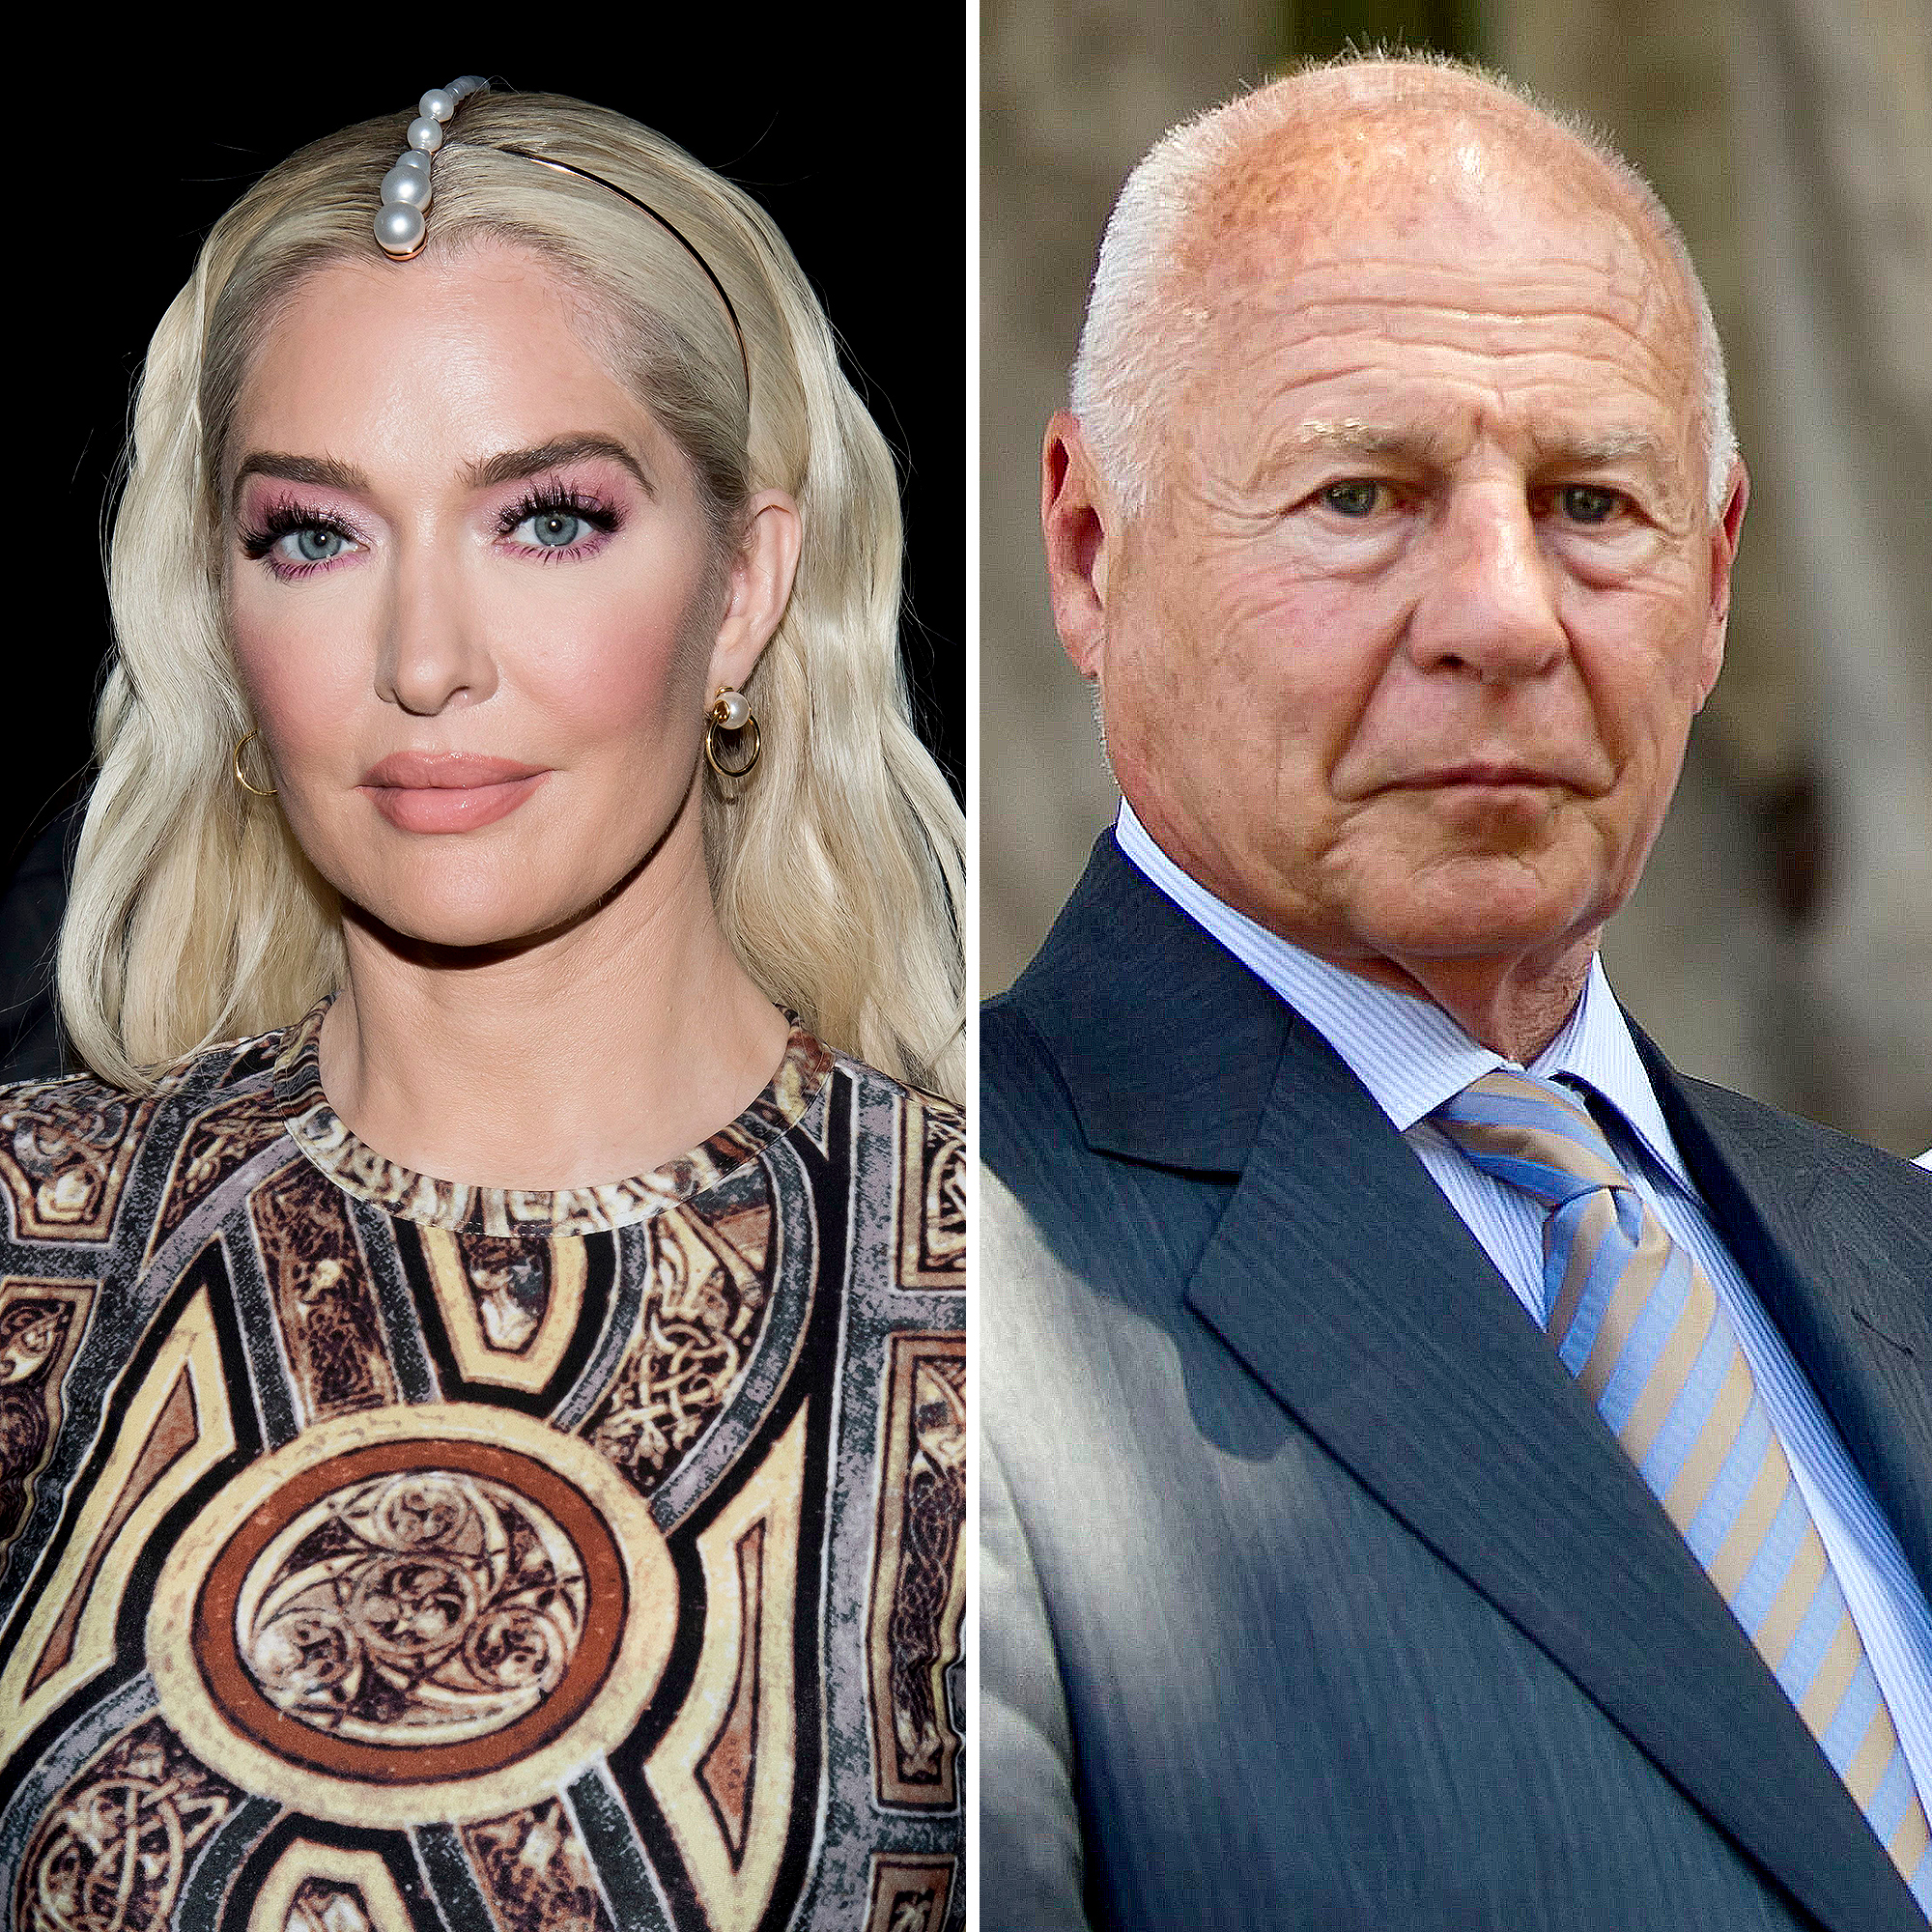 Erika Jayne Breaks Silence On Tom Girardi Drama In Rhobh Trailer